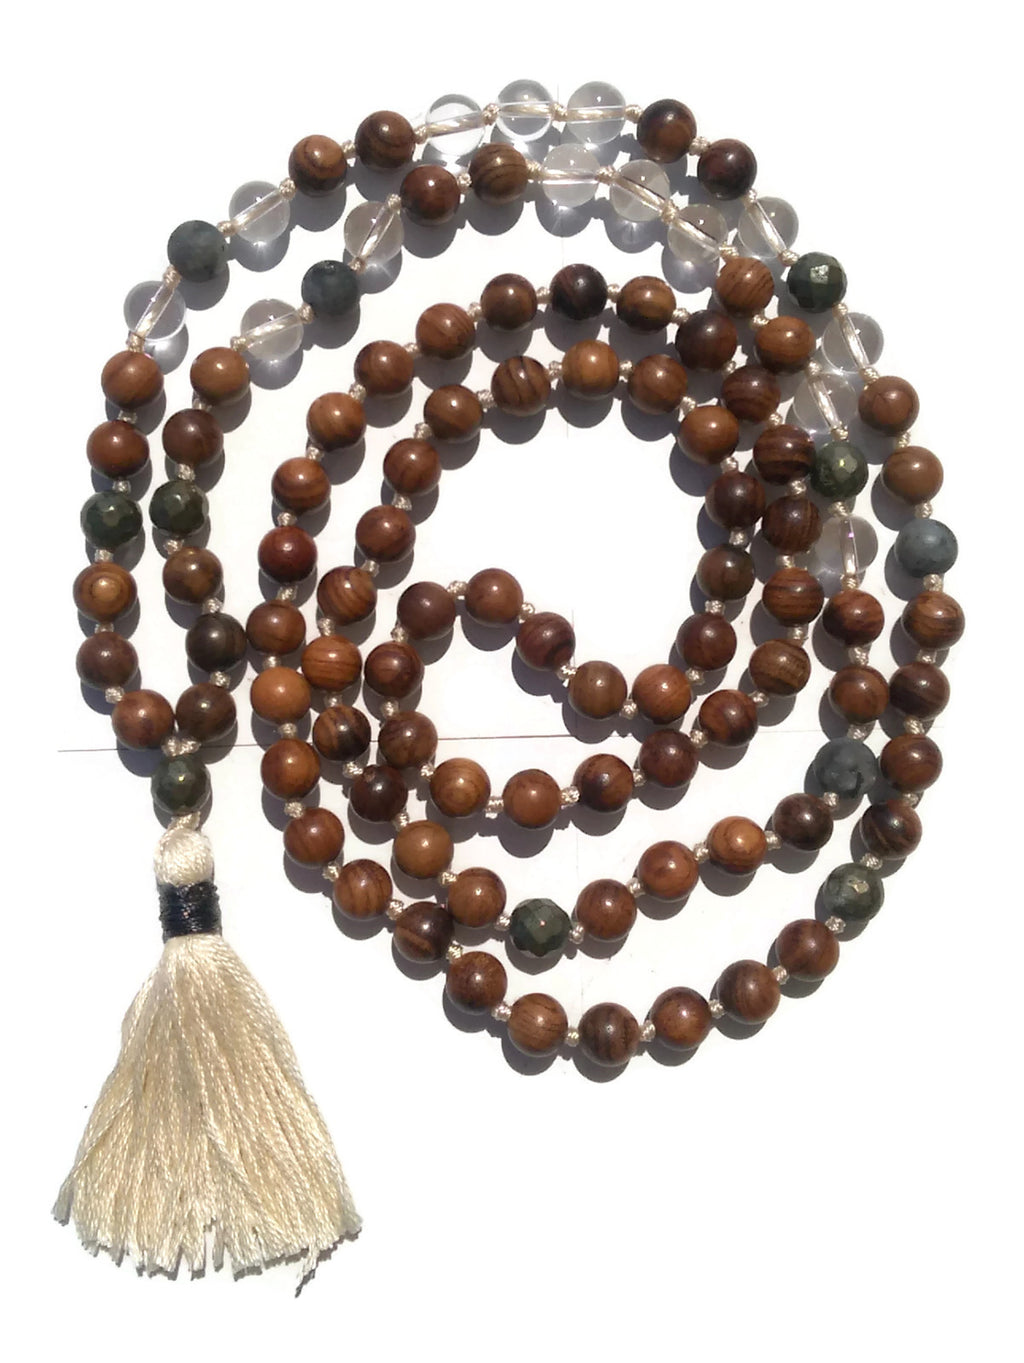 Pure Collection 8mm Pear Wood Clear Crystal Matte Labradorite Pyrite Traditional Hand Knotted 108 Bead Meditation Mala Necklace Crown Chakra